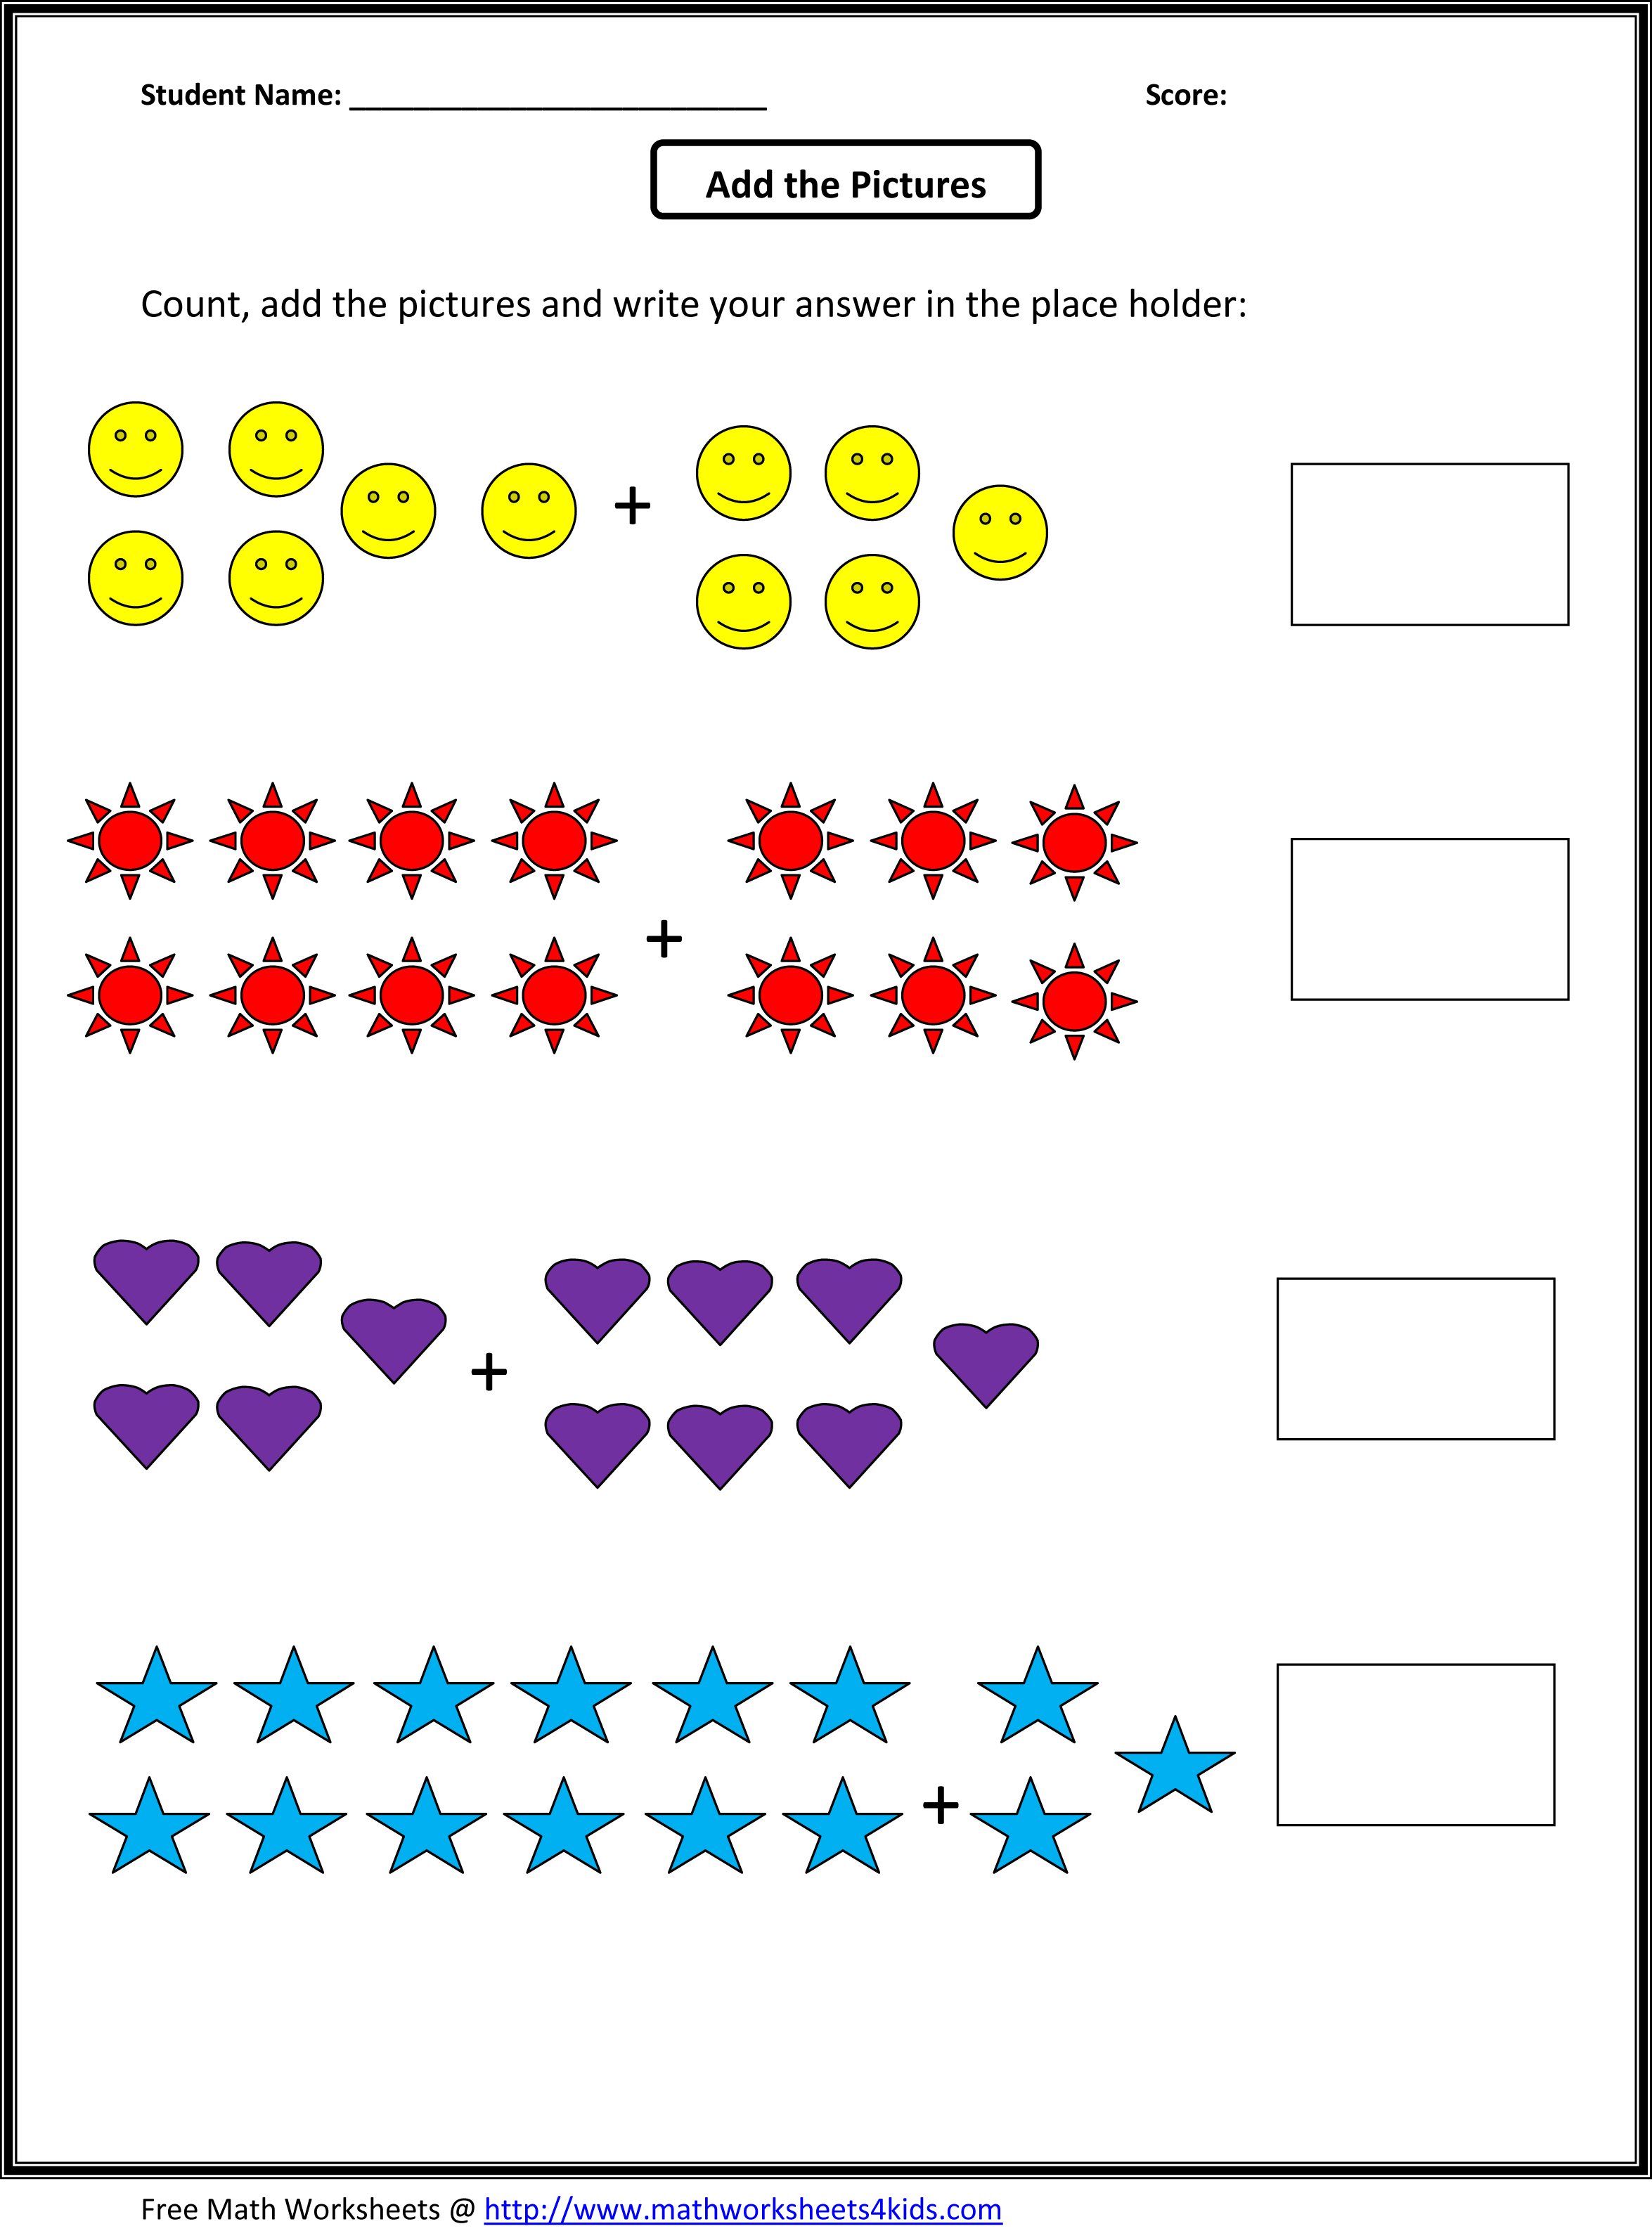 Aldiablosus  Winning Grade  Maths Worksheet  Reocurent With Entrancing Math Worksheets For St Grade Free  Reocurent With Cute Worksheets For Kg Class Also Ratio Problems Worksheets In Addition Calculate Your Carbon Footprint Worksheet And Counting Worksheets For Kids As Well As Adjectives Worksheets For Class  Additionally Maths Worksheets Free Printable From Reocurentcom With Aldiablosus  Entrancing Grade  Maths Worksheet  Reocurent With Cute Math Worksheets For St Grade Free  Reocurent And Winning Worksheets For Kg Class Also Ratio Problems Worksheets In Addition Calculate Your Carbon Footprint Worksheet From Reocurentcom